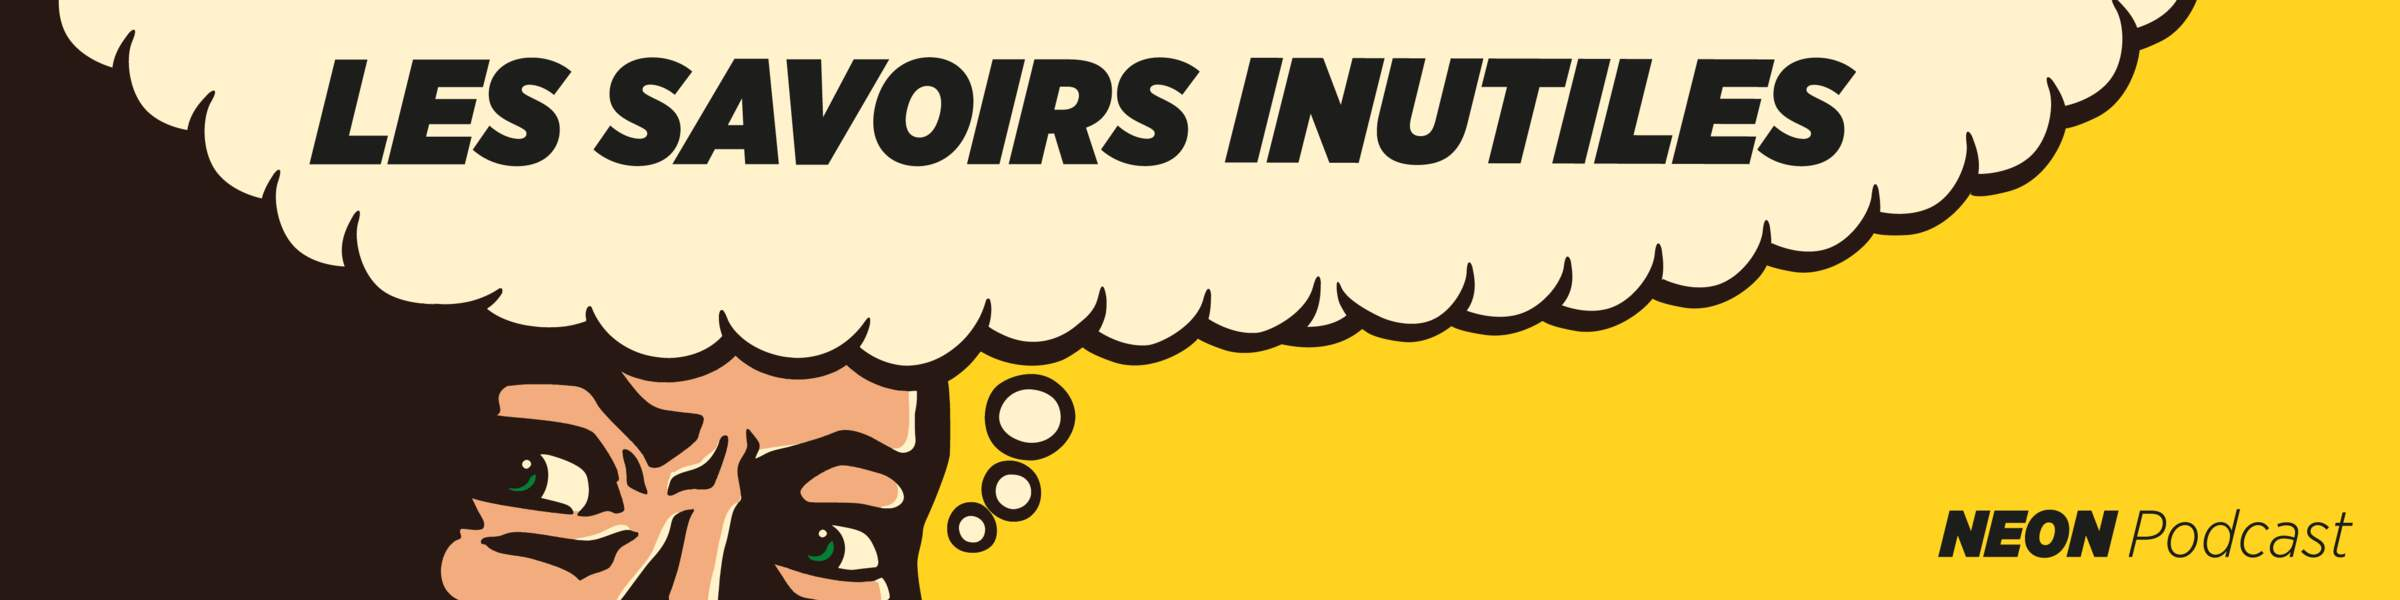 Les savoirs inutiles : le podcast